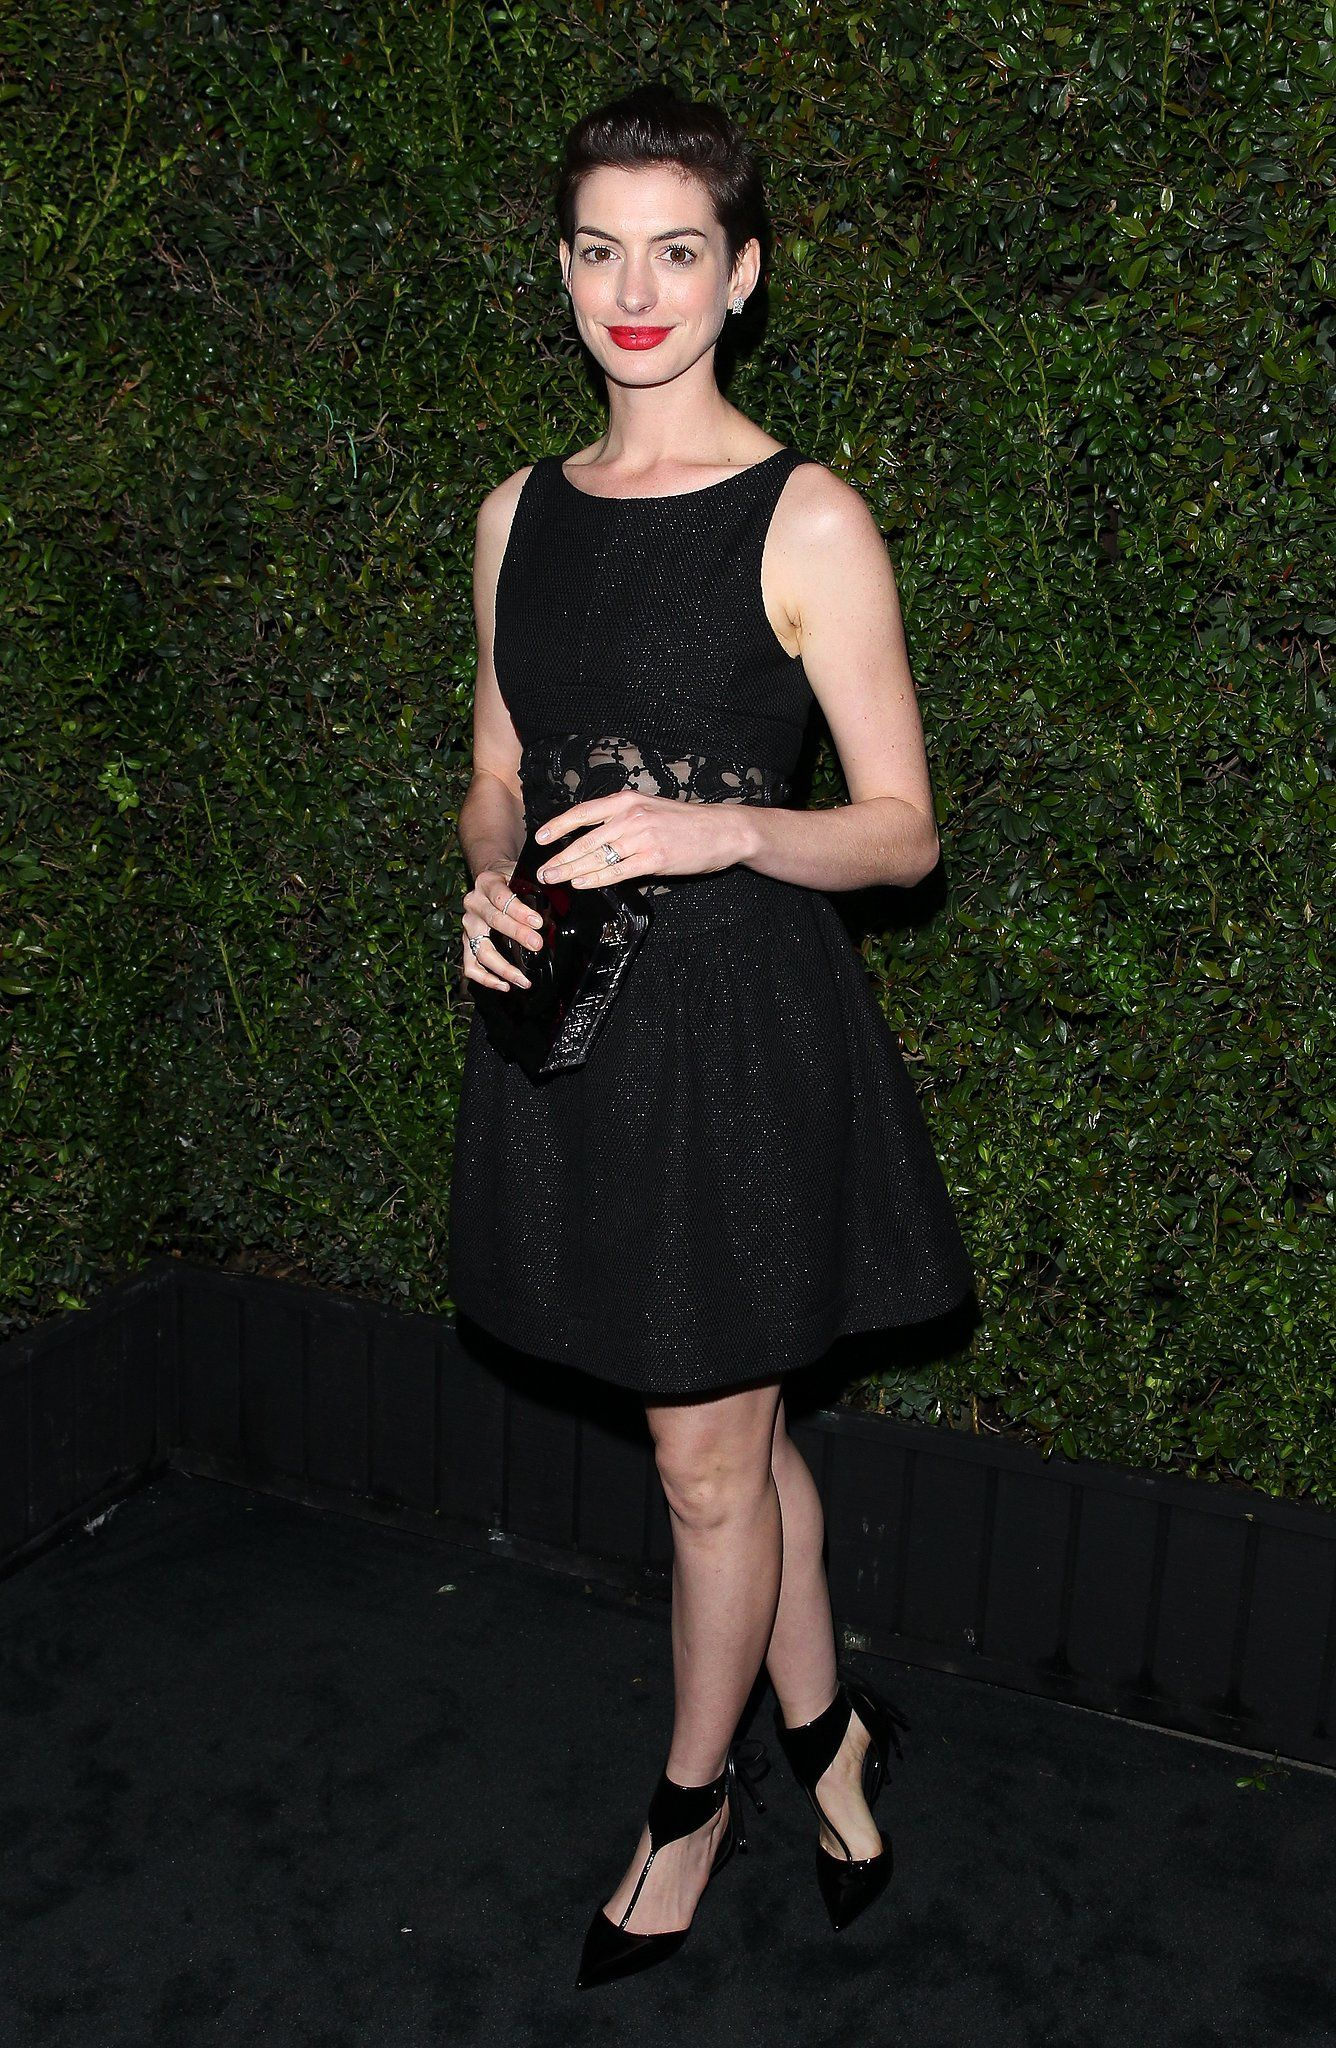 Anne hathaway kept it simple in a black dress at chanelus preoscars